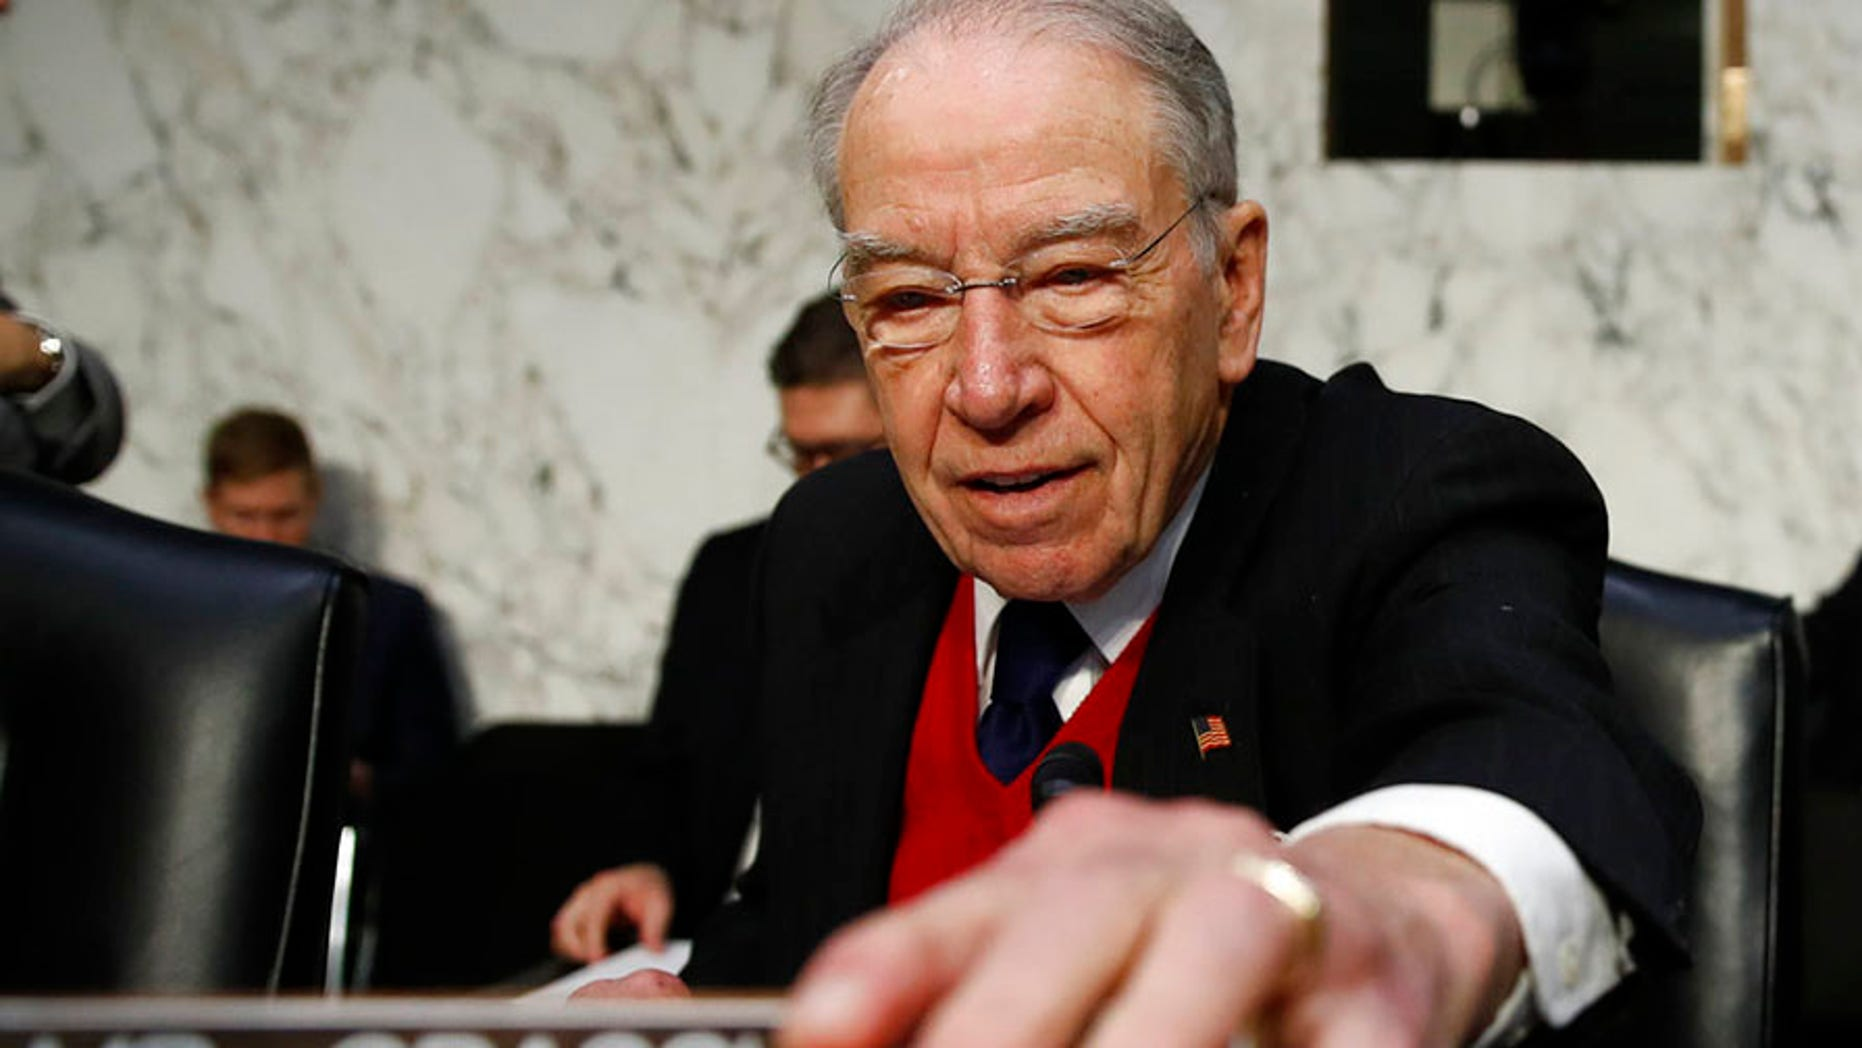 Senate Judiciary Committee Chairman Chuck Grassley, R-Iowa, called Wednesday for the founders of Fusion GPS to testify in public.